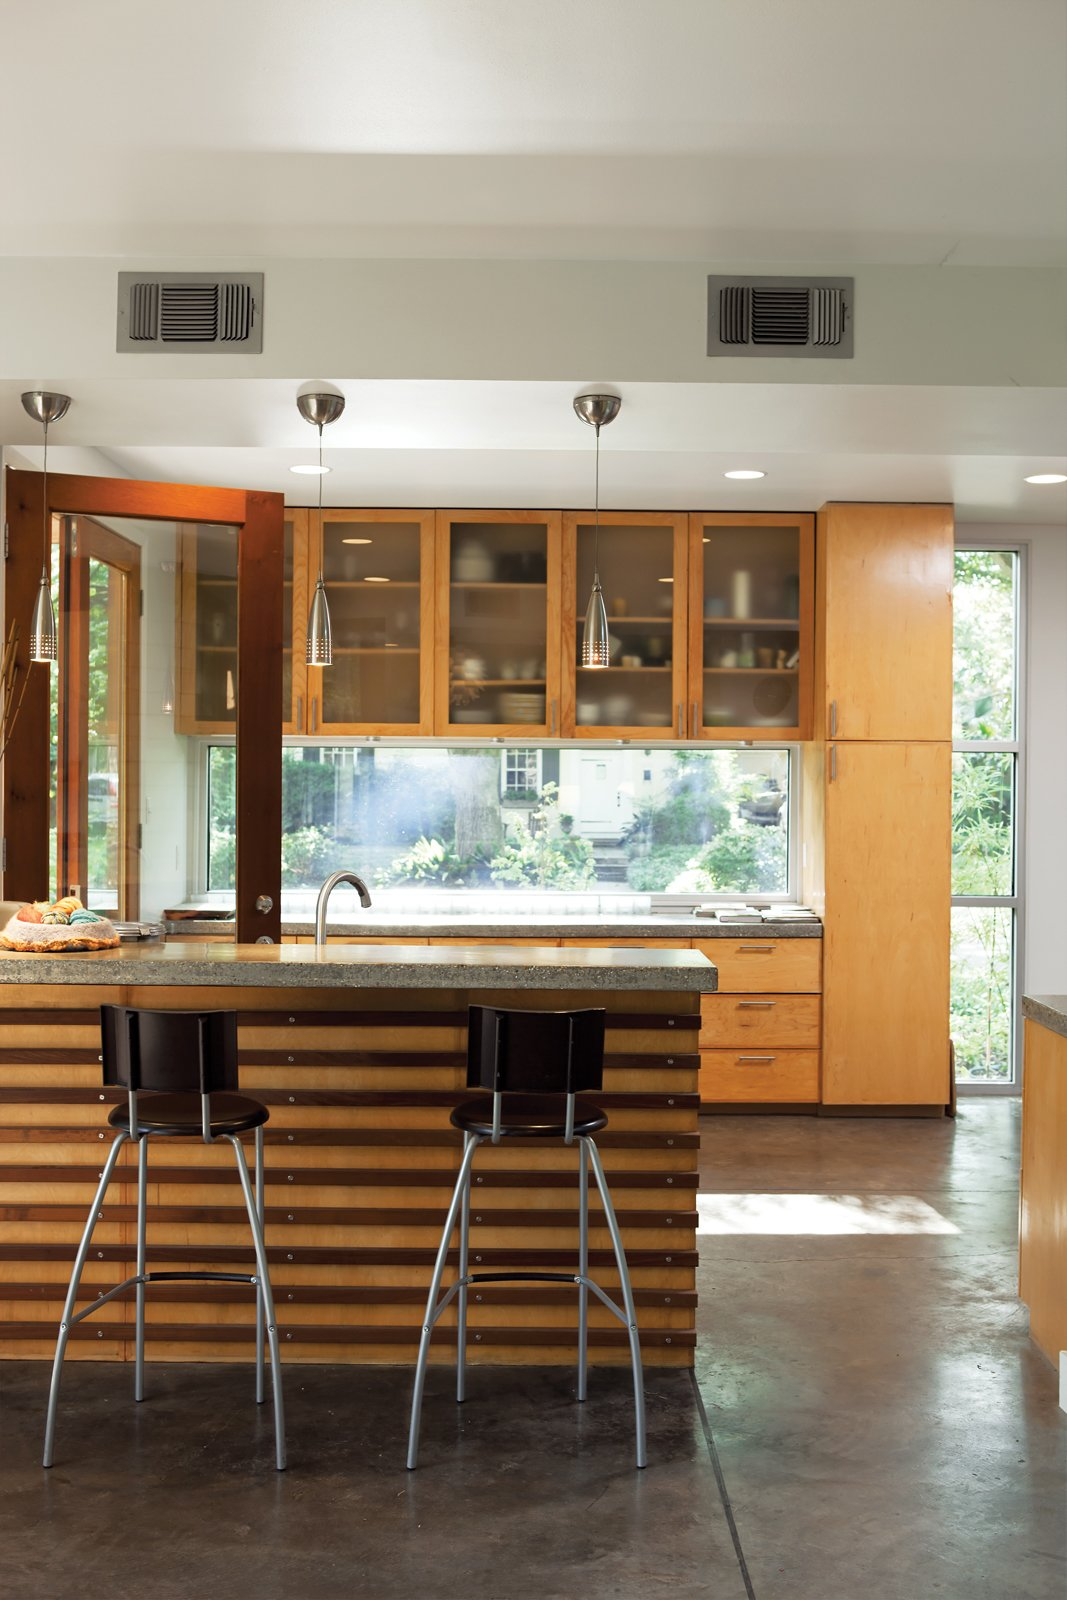 Kitchen, Concrete Floor, Wood Cabinet, and Pendant Lighting Moreland House  Photo 6 of 13 in Designed to Handle the Heat and More